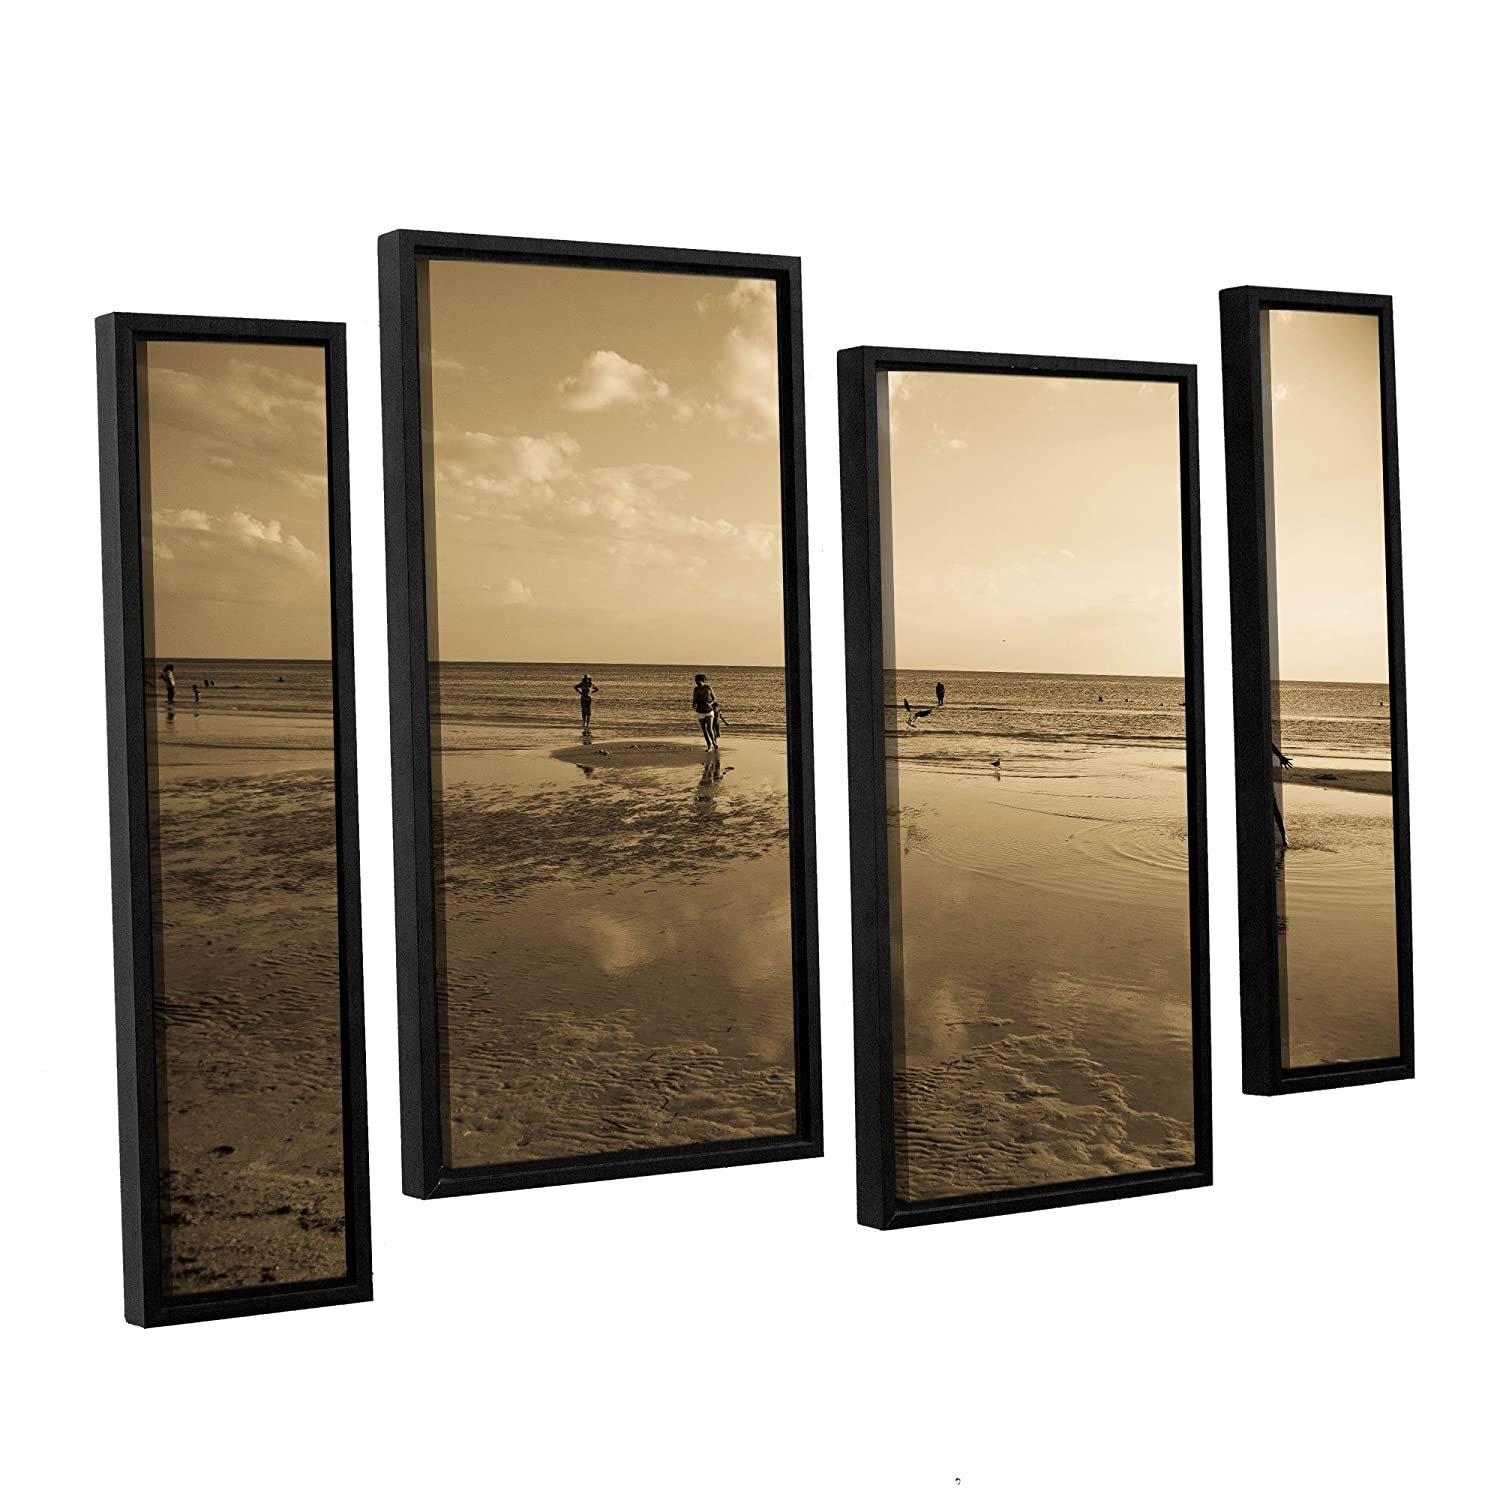 24 by 36 ArtWall Lindsey Janich 0397 4 Piece Floater Framed Canvas Artwork